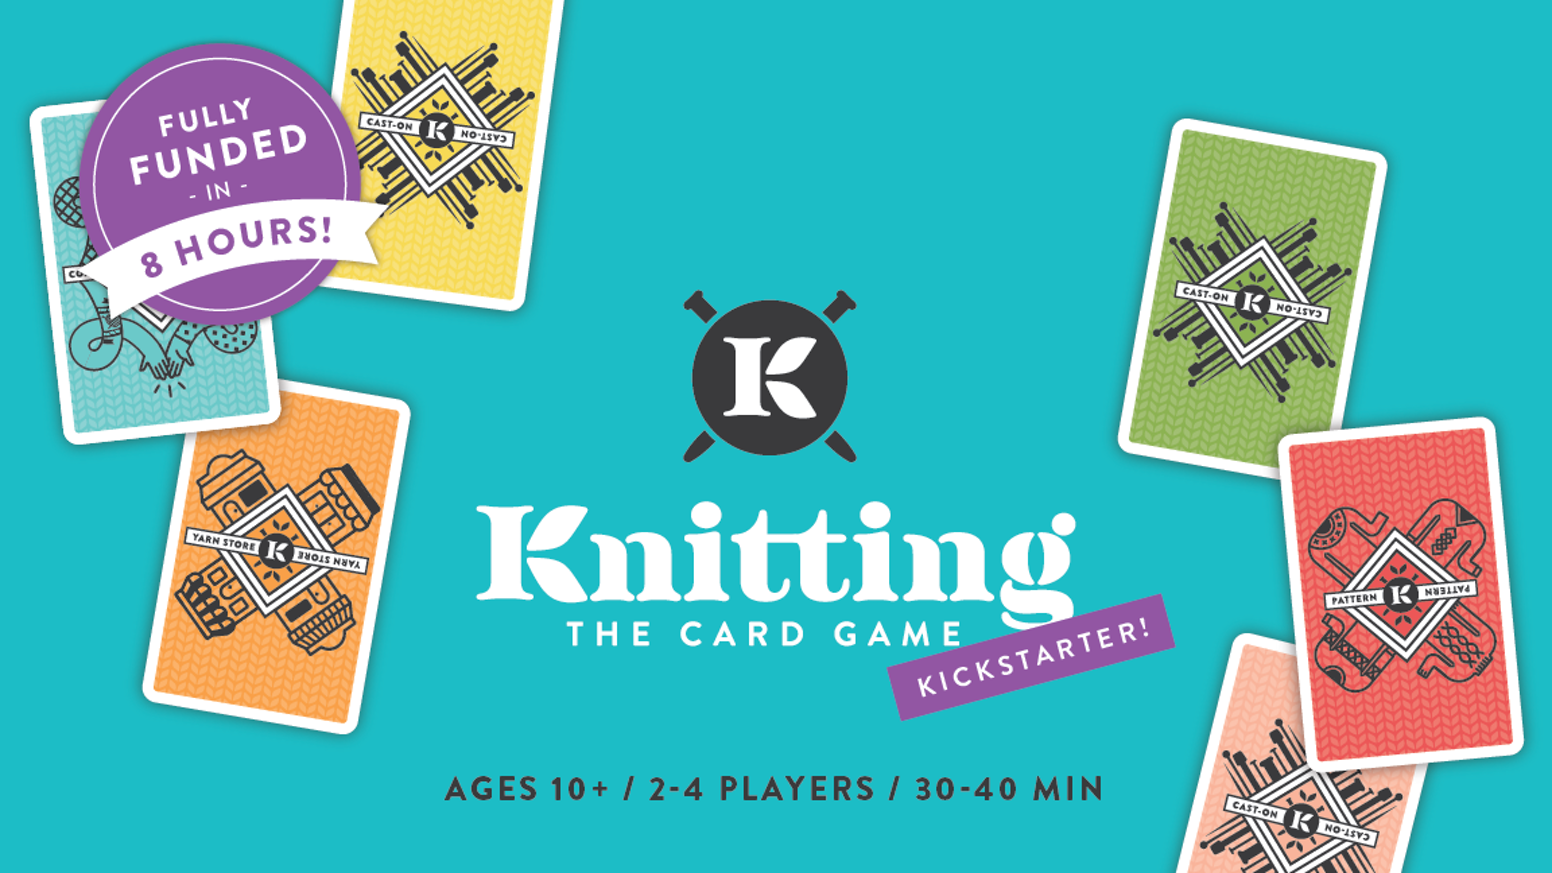 Dive into the fun and beautiful world of fiber art with this knitting based card game featuring indie designers and indie dyers.